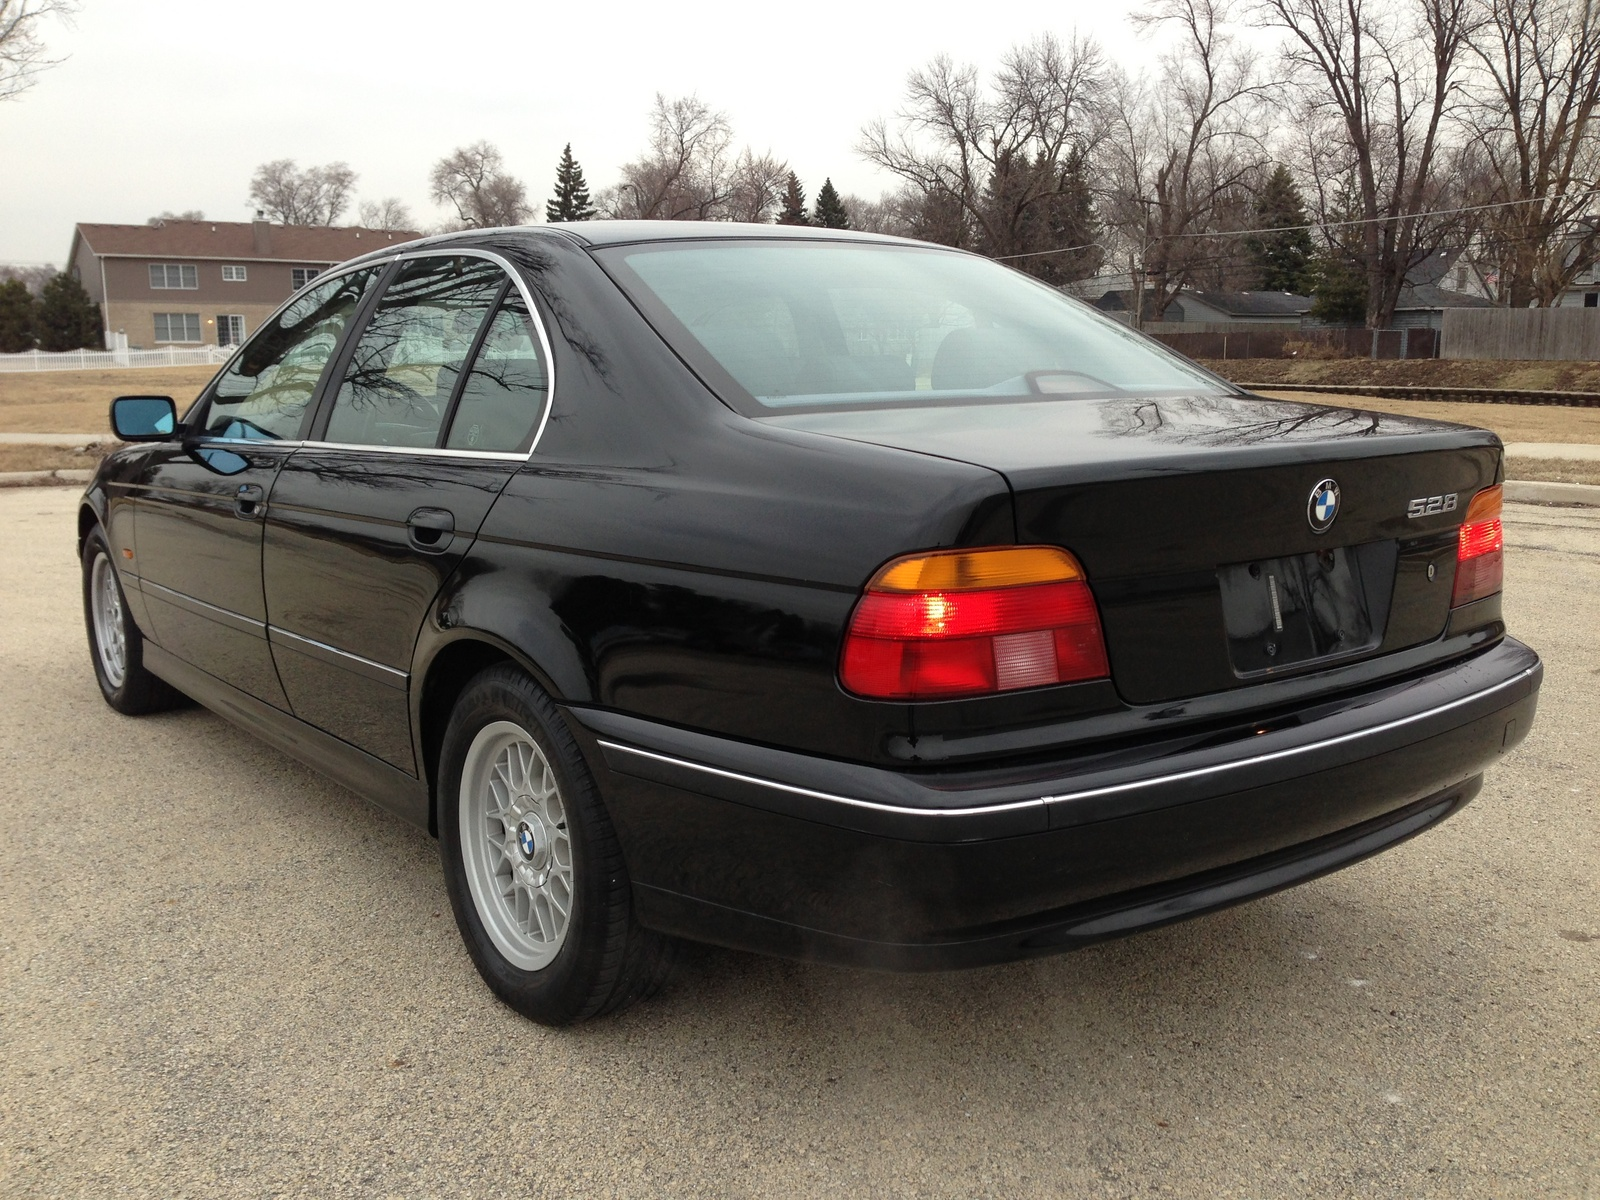 BMW 5 series 535i 1999 photo - 3